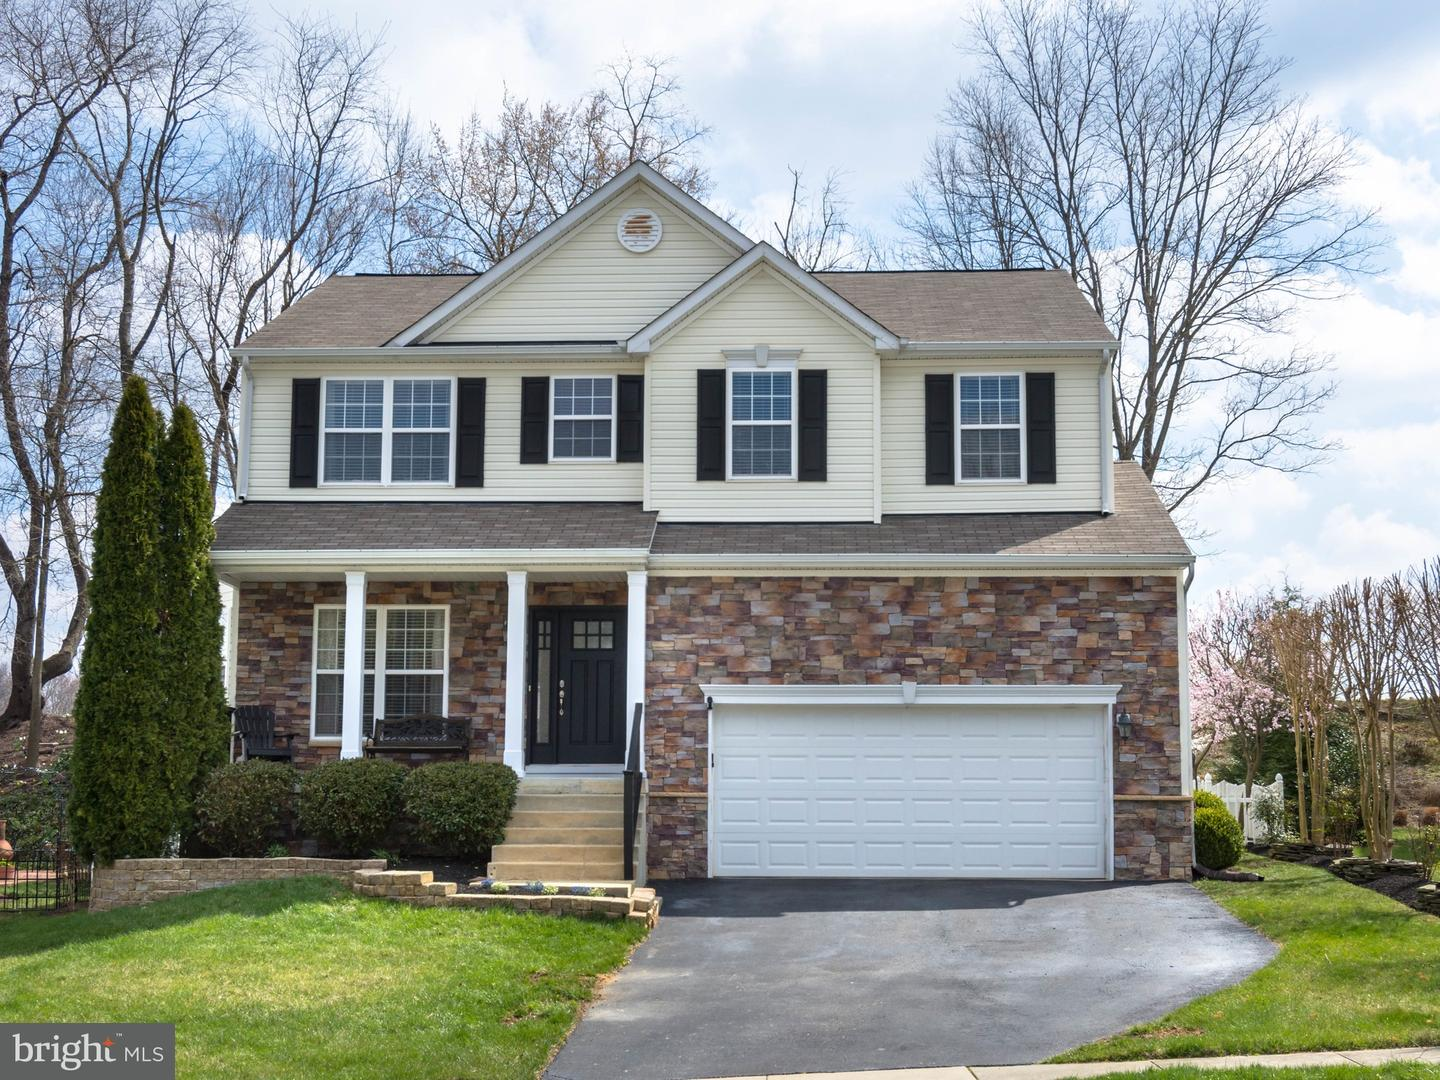 Single Family for Sale at THE PRESERVE OFCENTREVILLE HOA, 138 Cypress Street Centreville, Maryland 21617 United States